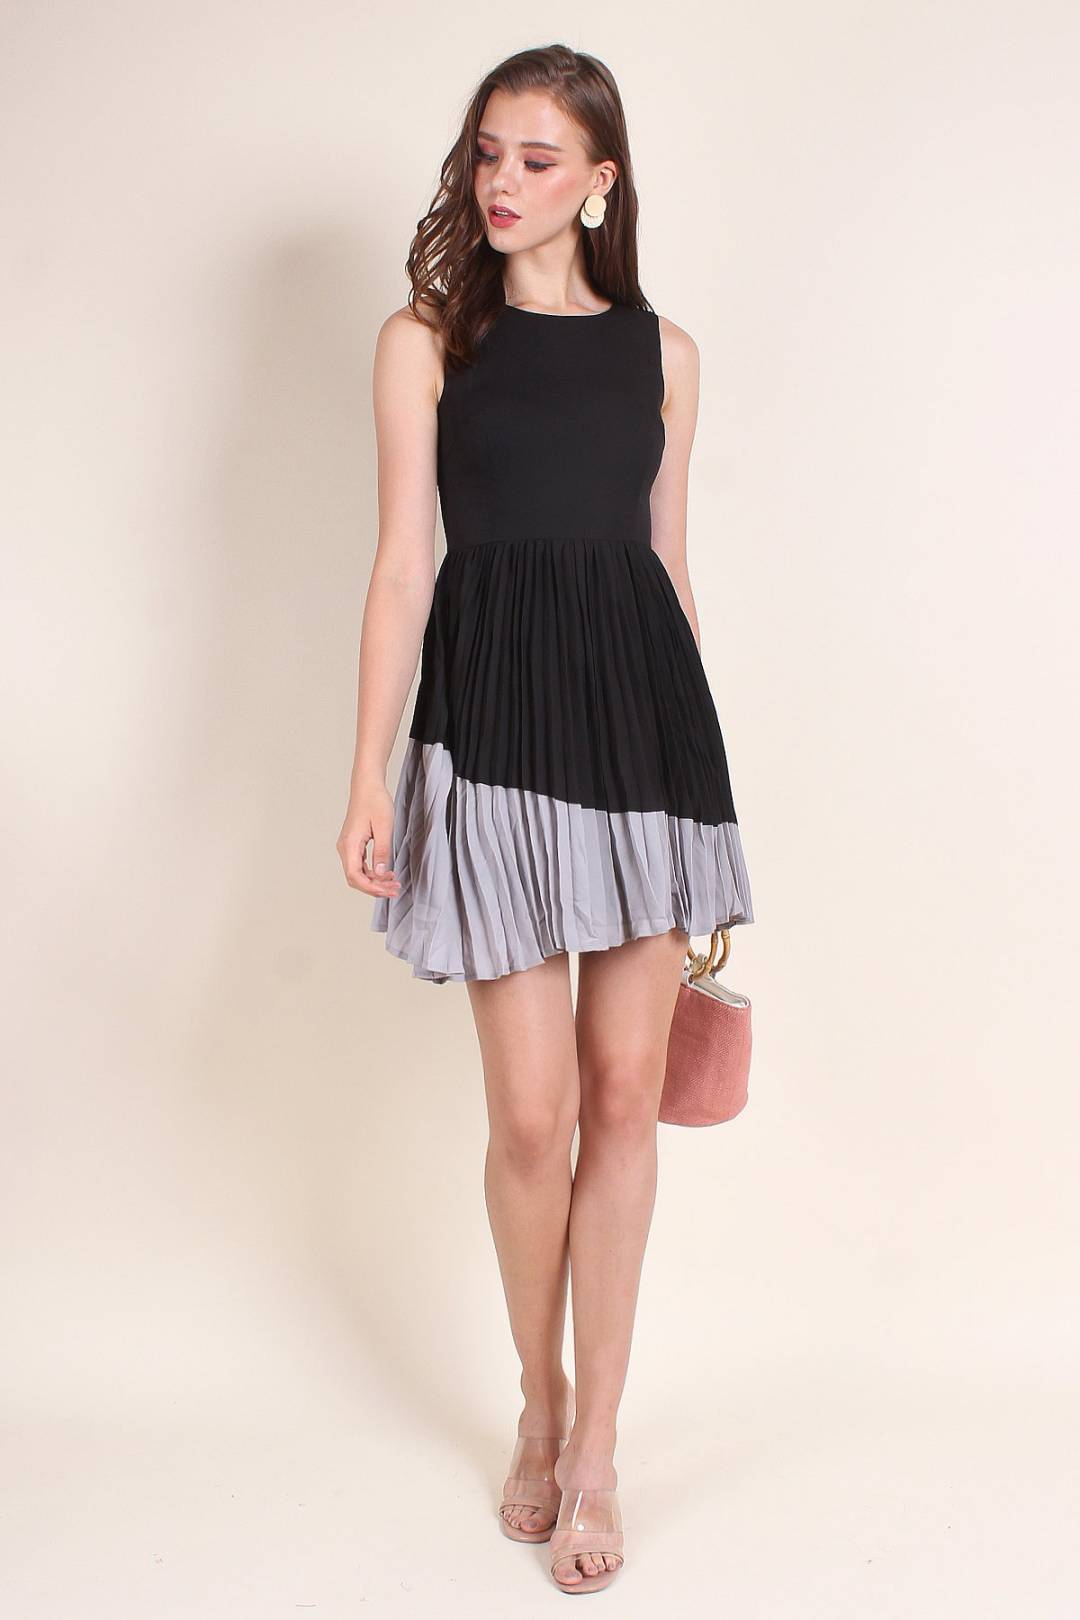 MADEBYNM EMMETT A-LINE COLOURBLOCK PLEAT DRESS IN BLACK/GREY [XS/S/M/L]